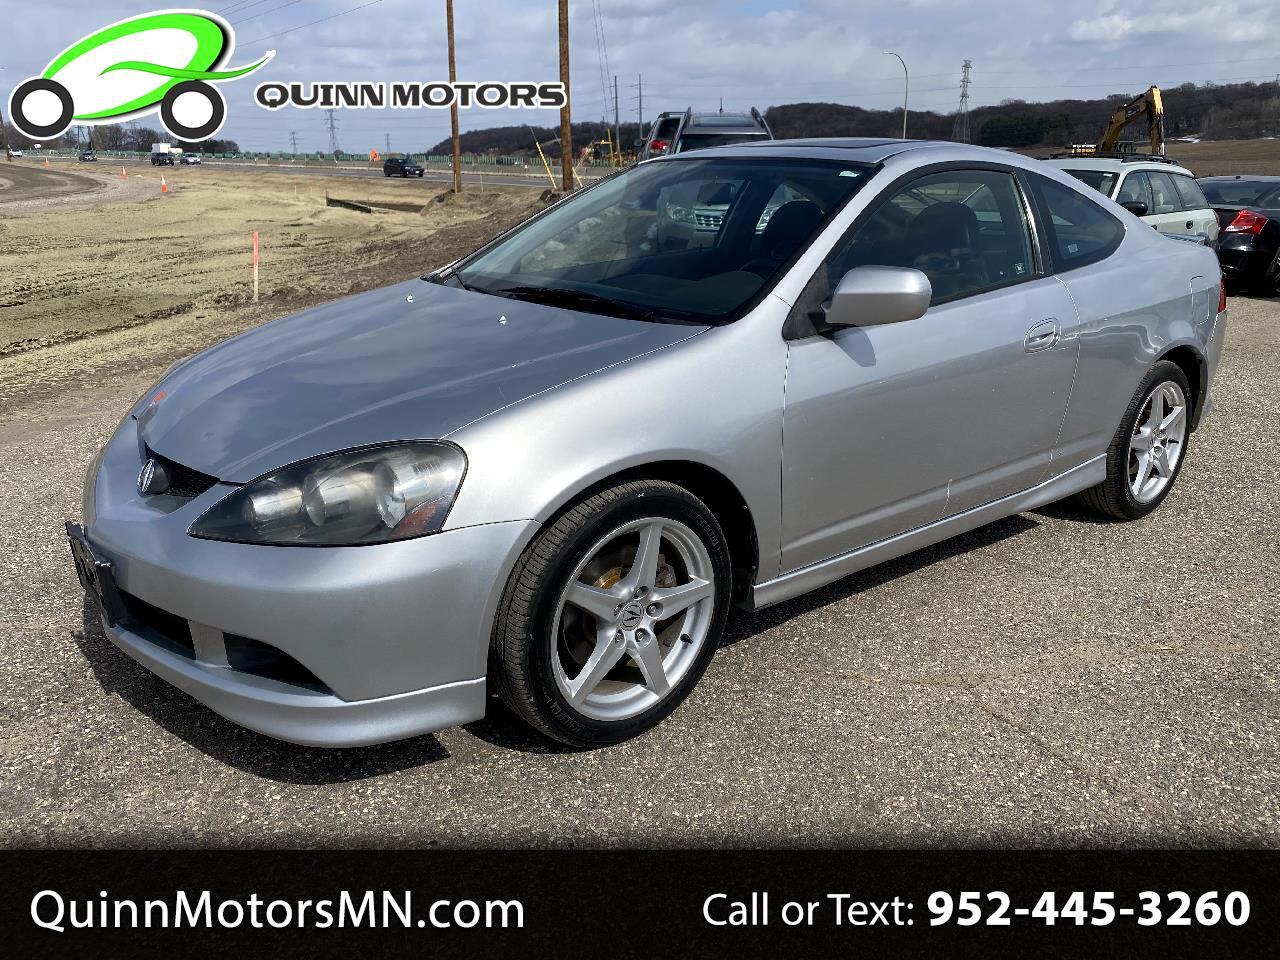 Acura RSX 2dr Cpe Type-S 6-spd MT Leather 2006